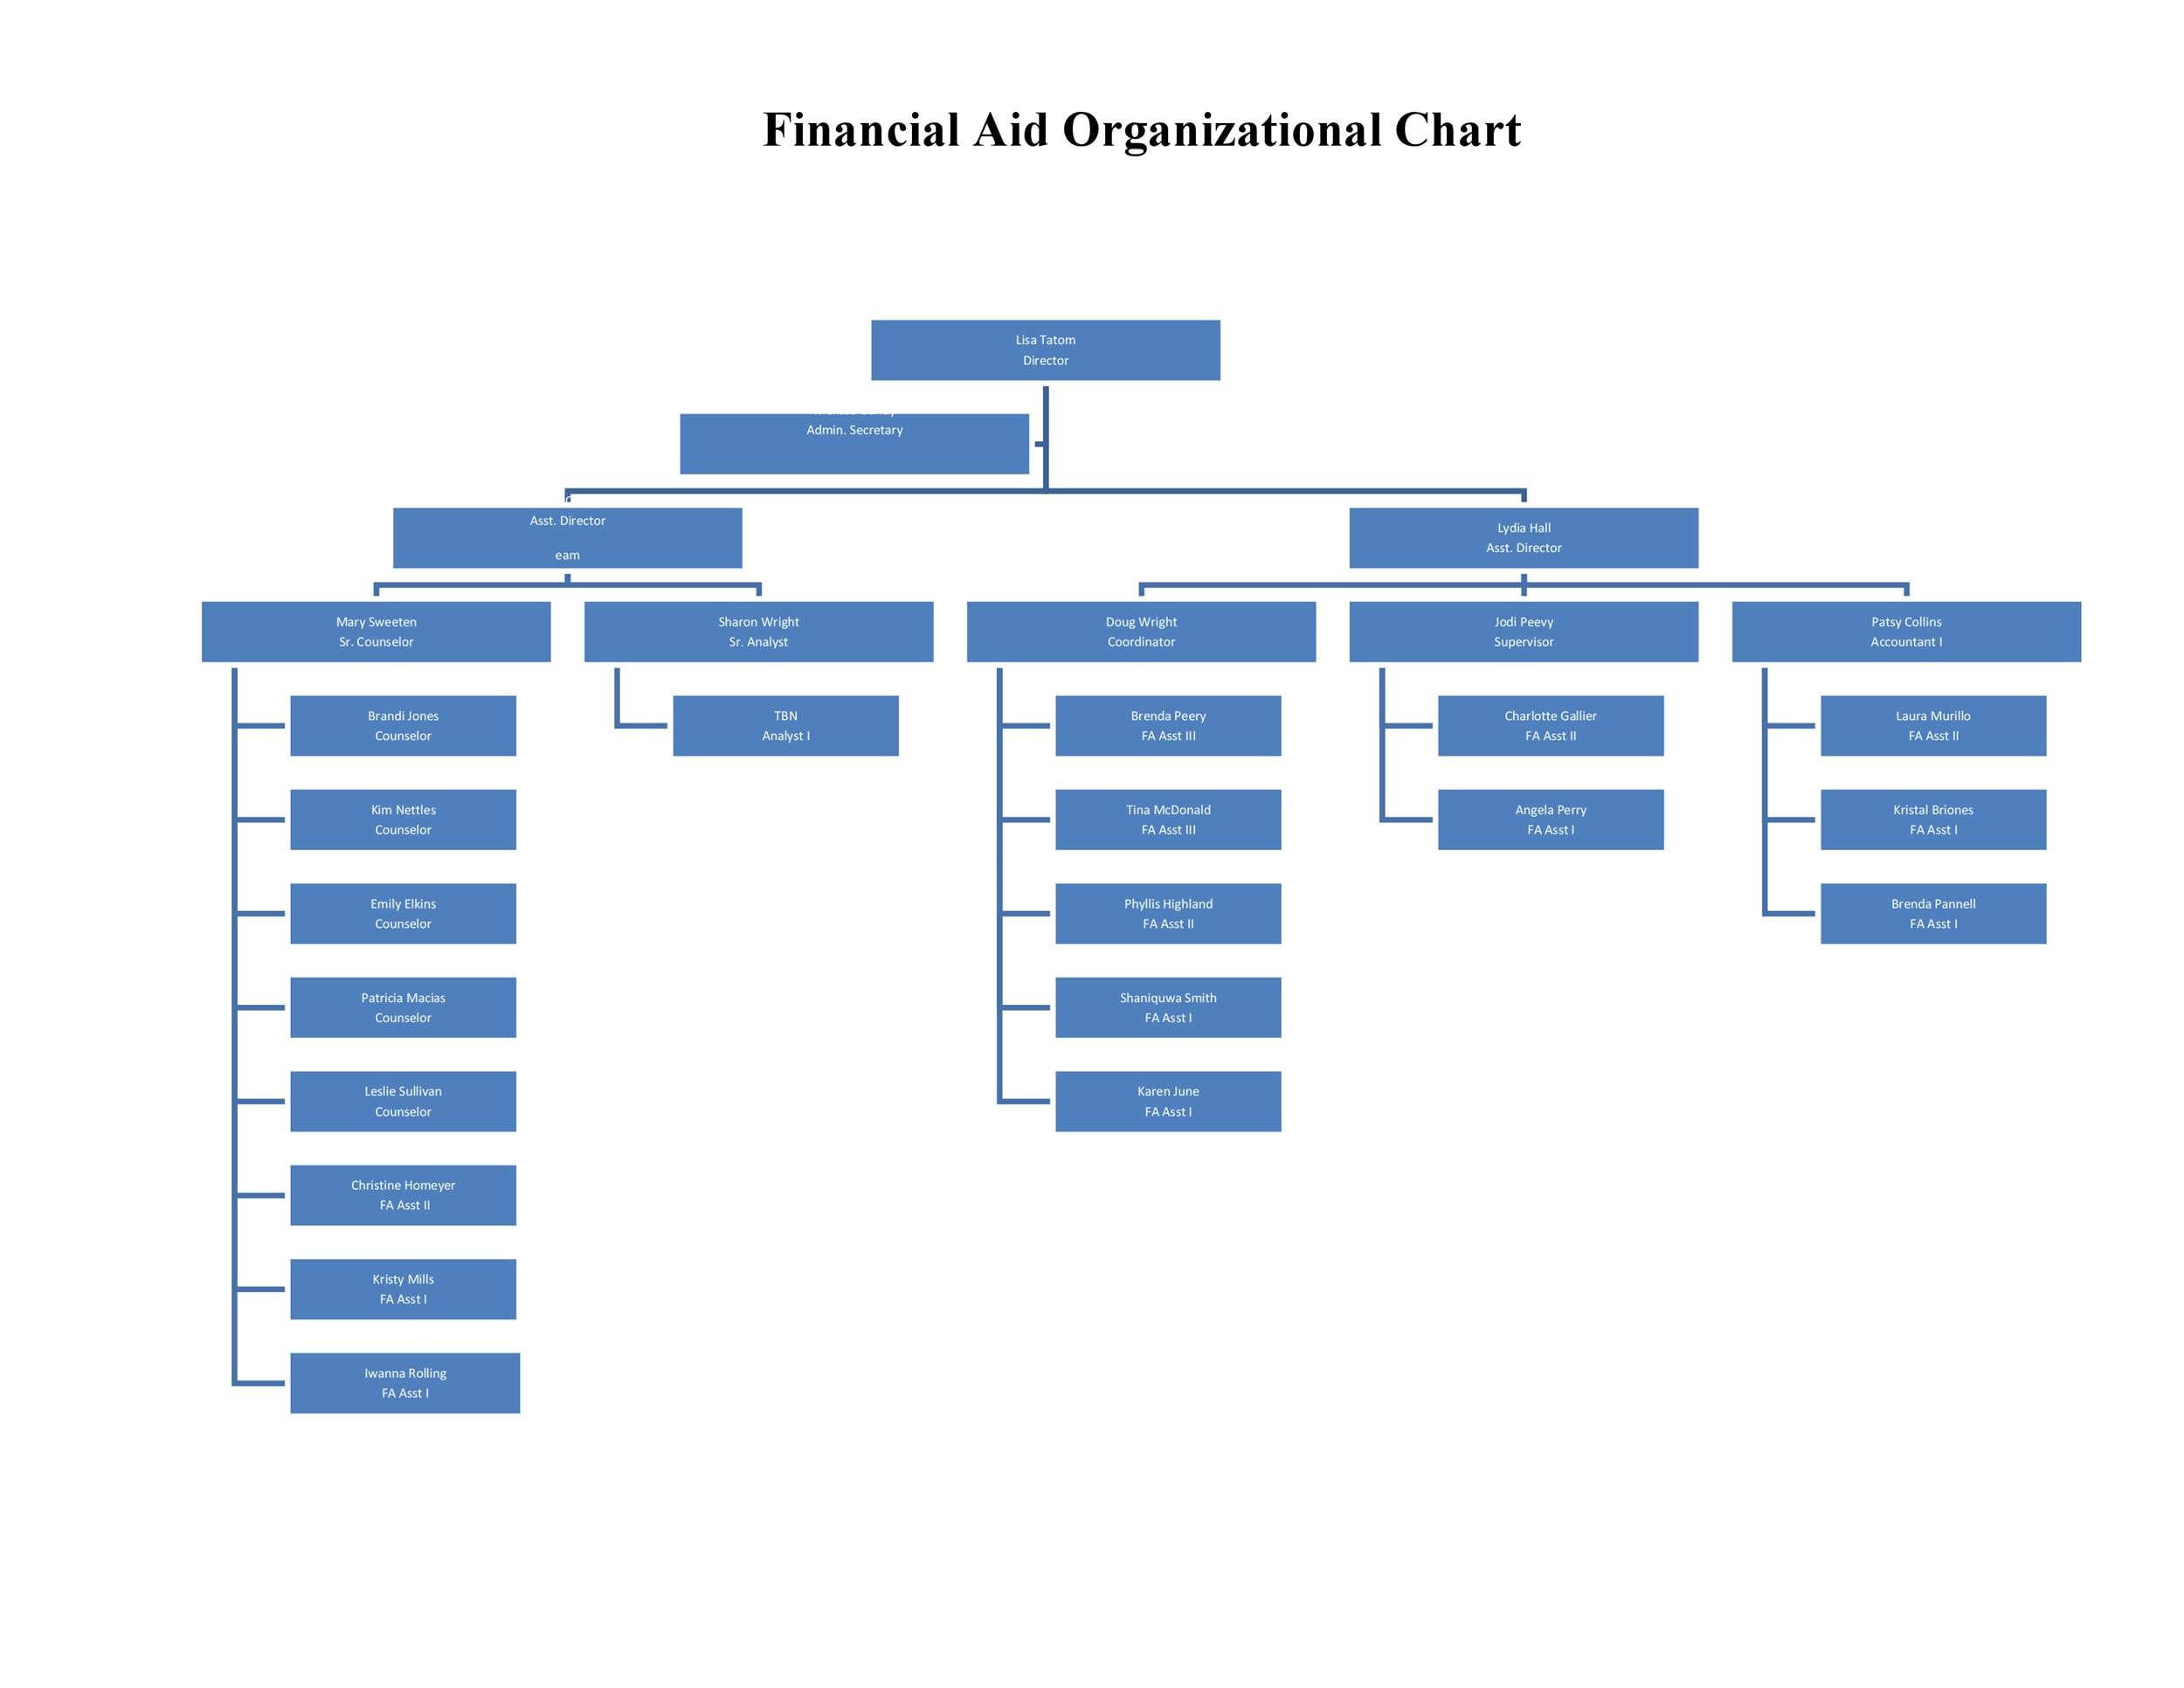 Org Chart Template Word - Organizational chart template word ...